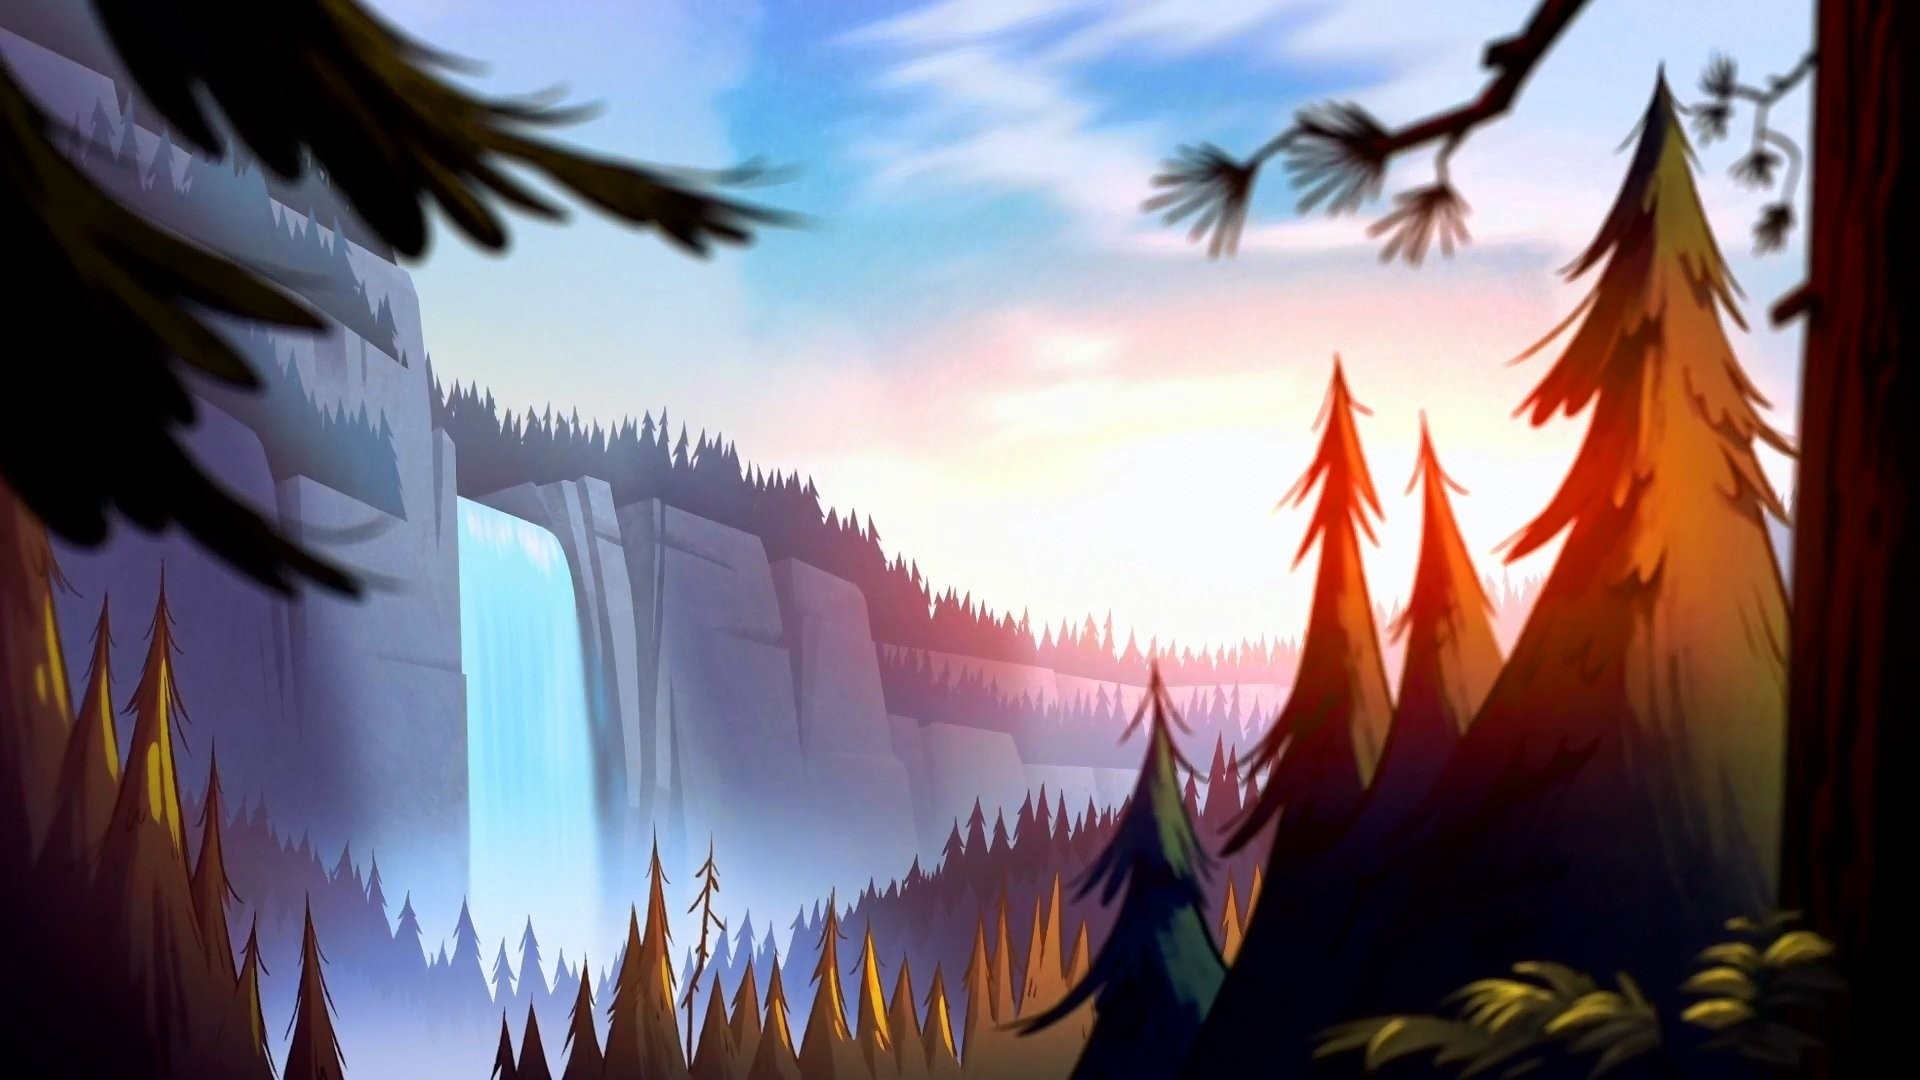 gravity falls hd wallpaper (65+ images)